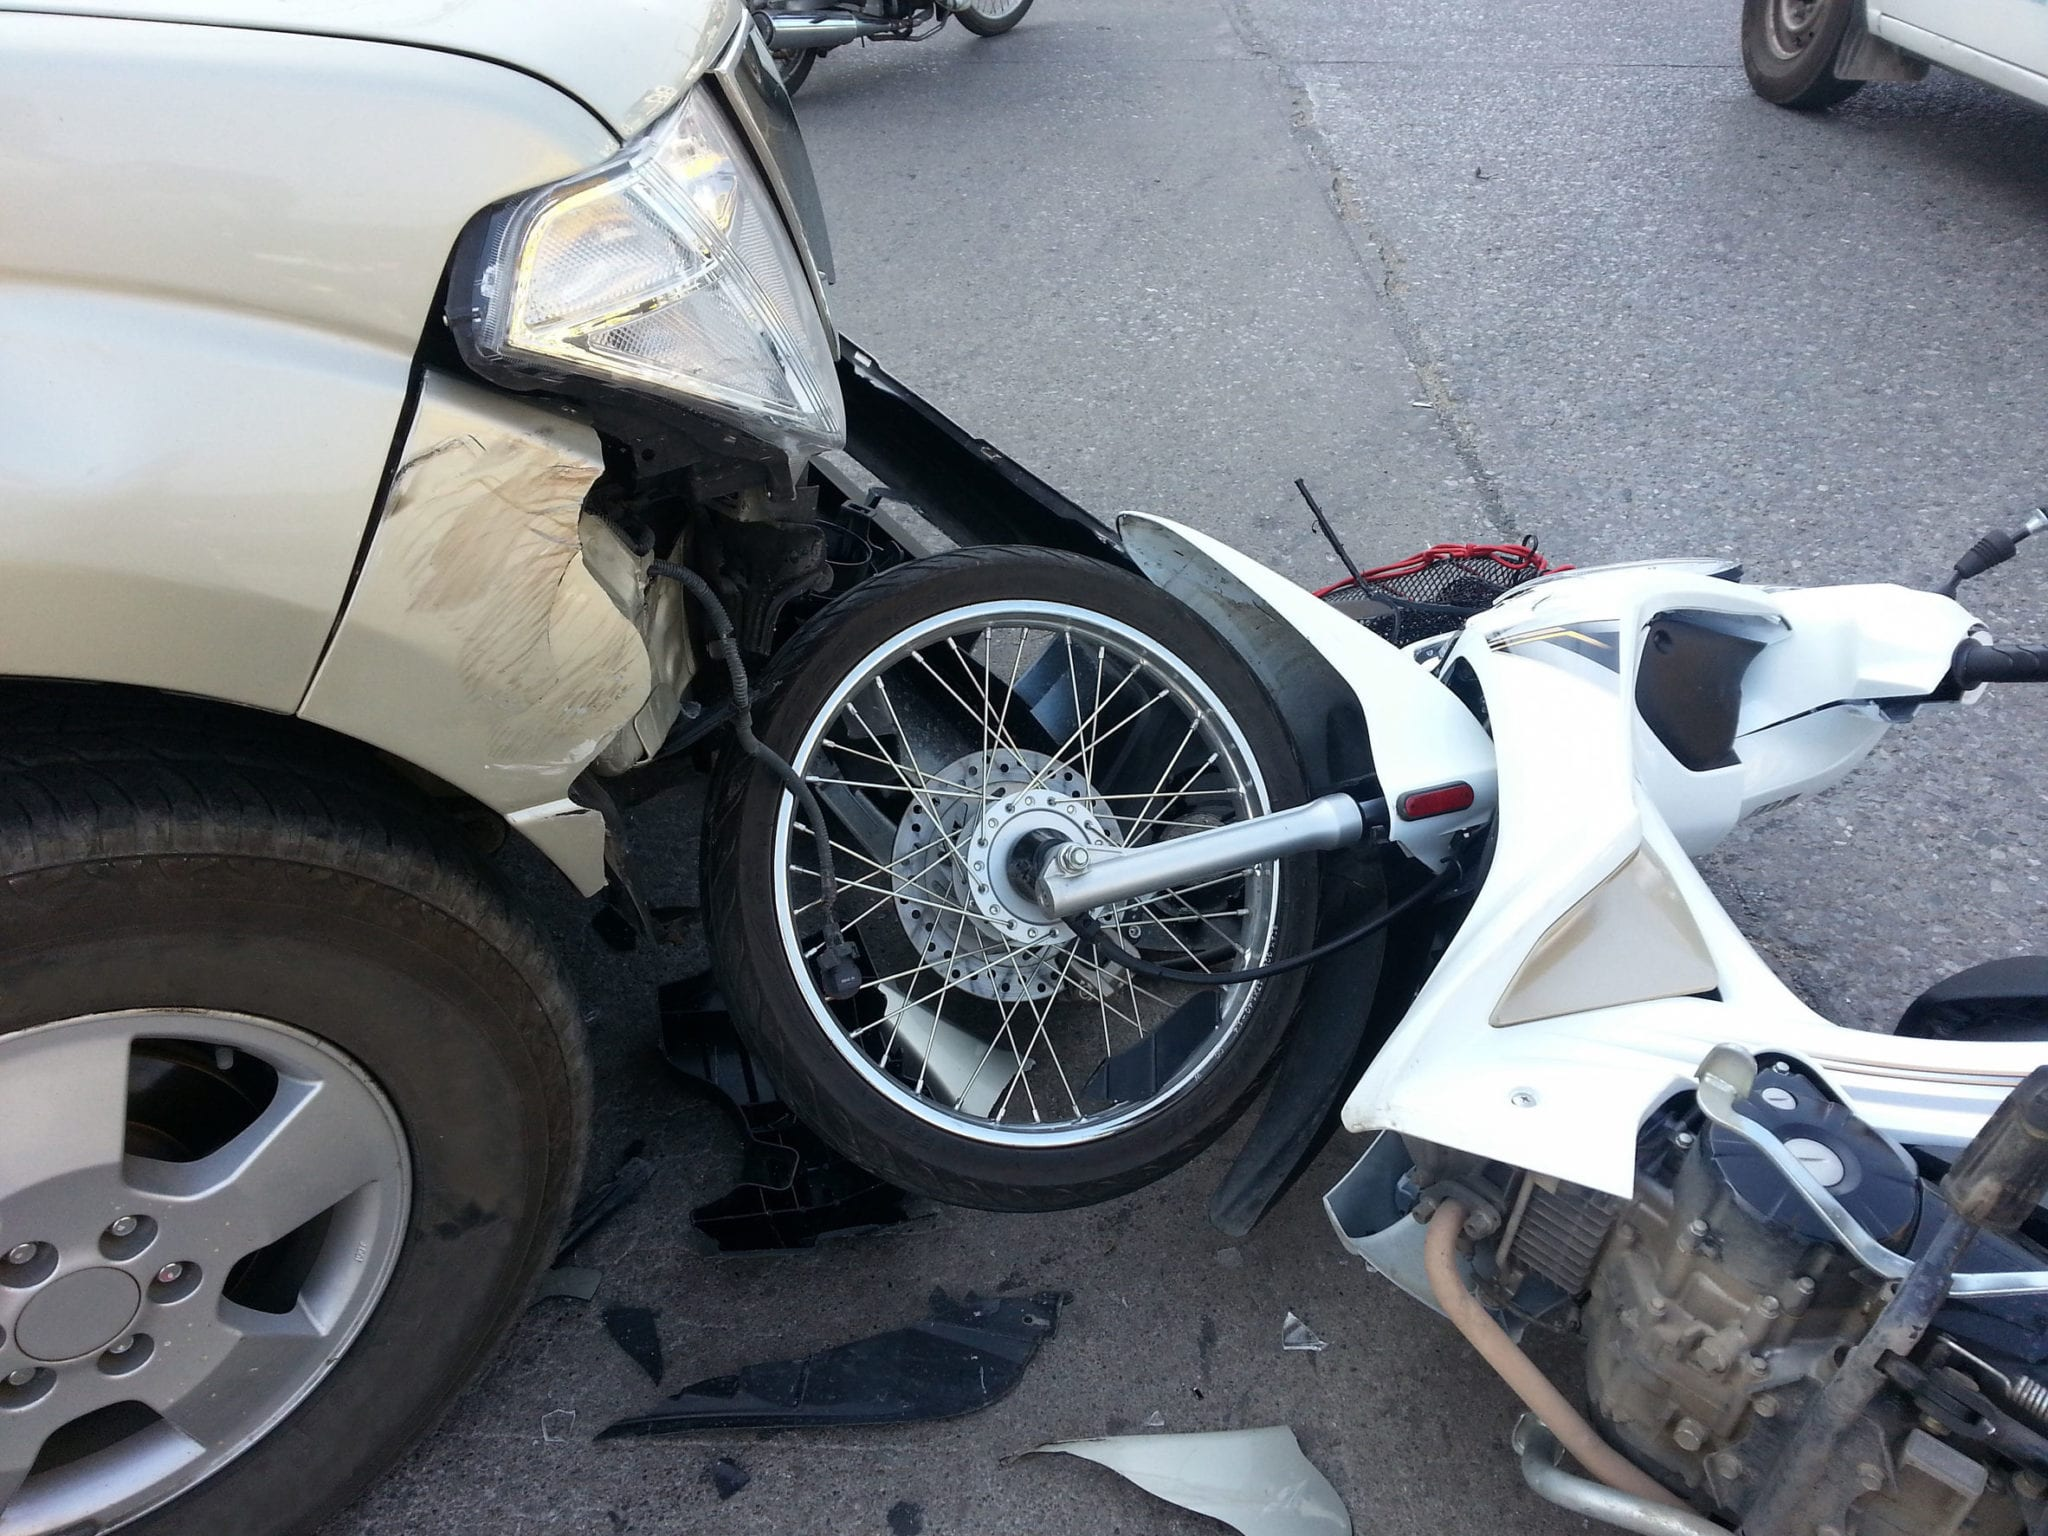 What's Next After You Suffer a Motorcycle Crash in Texas?